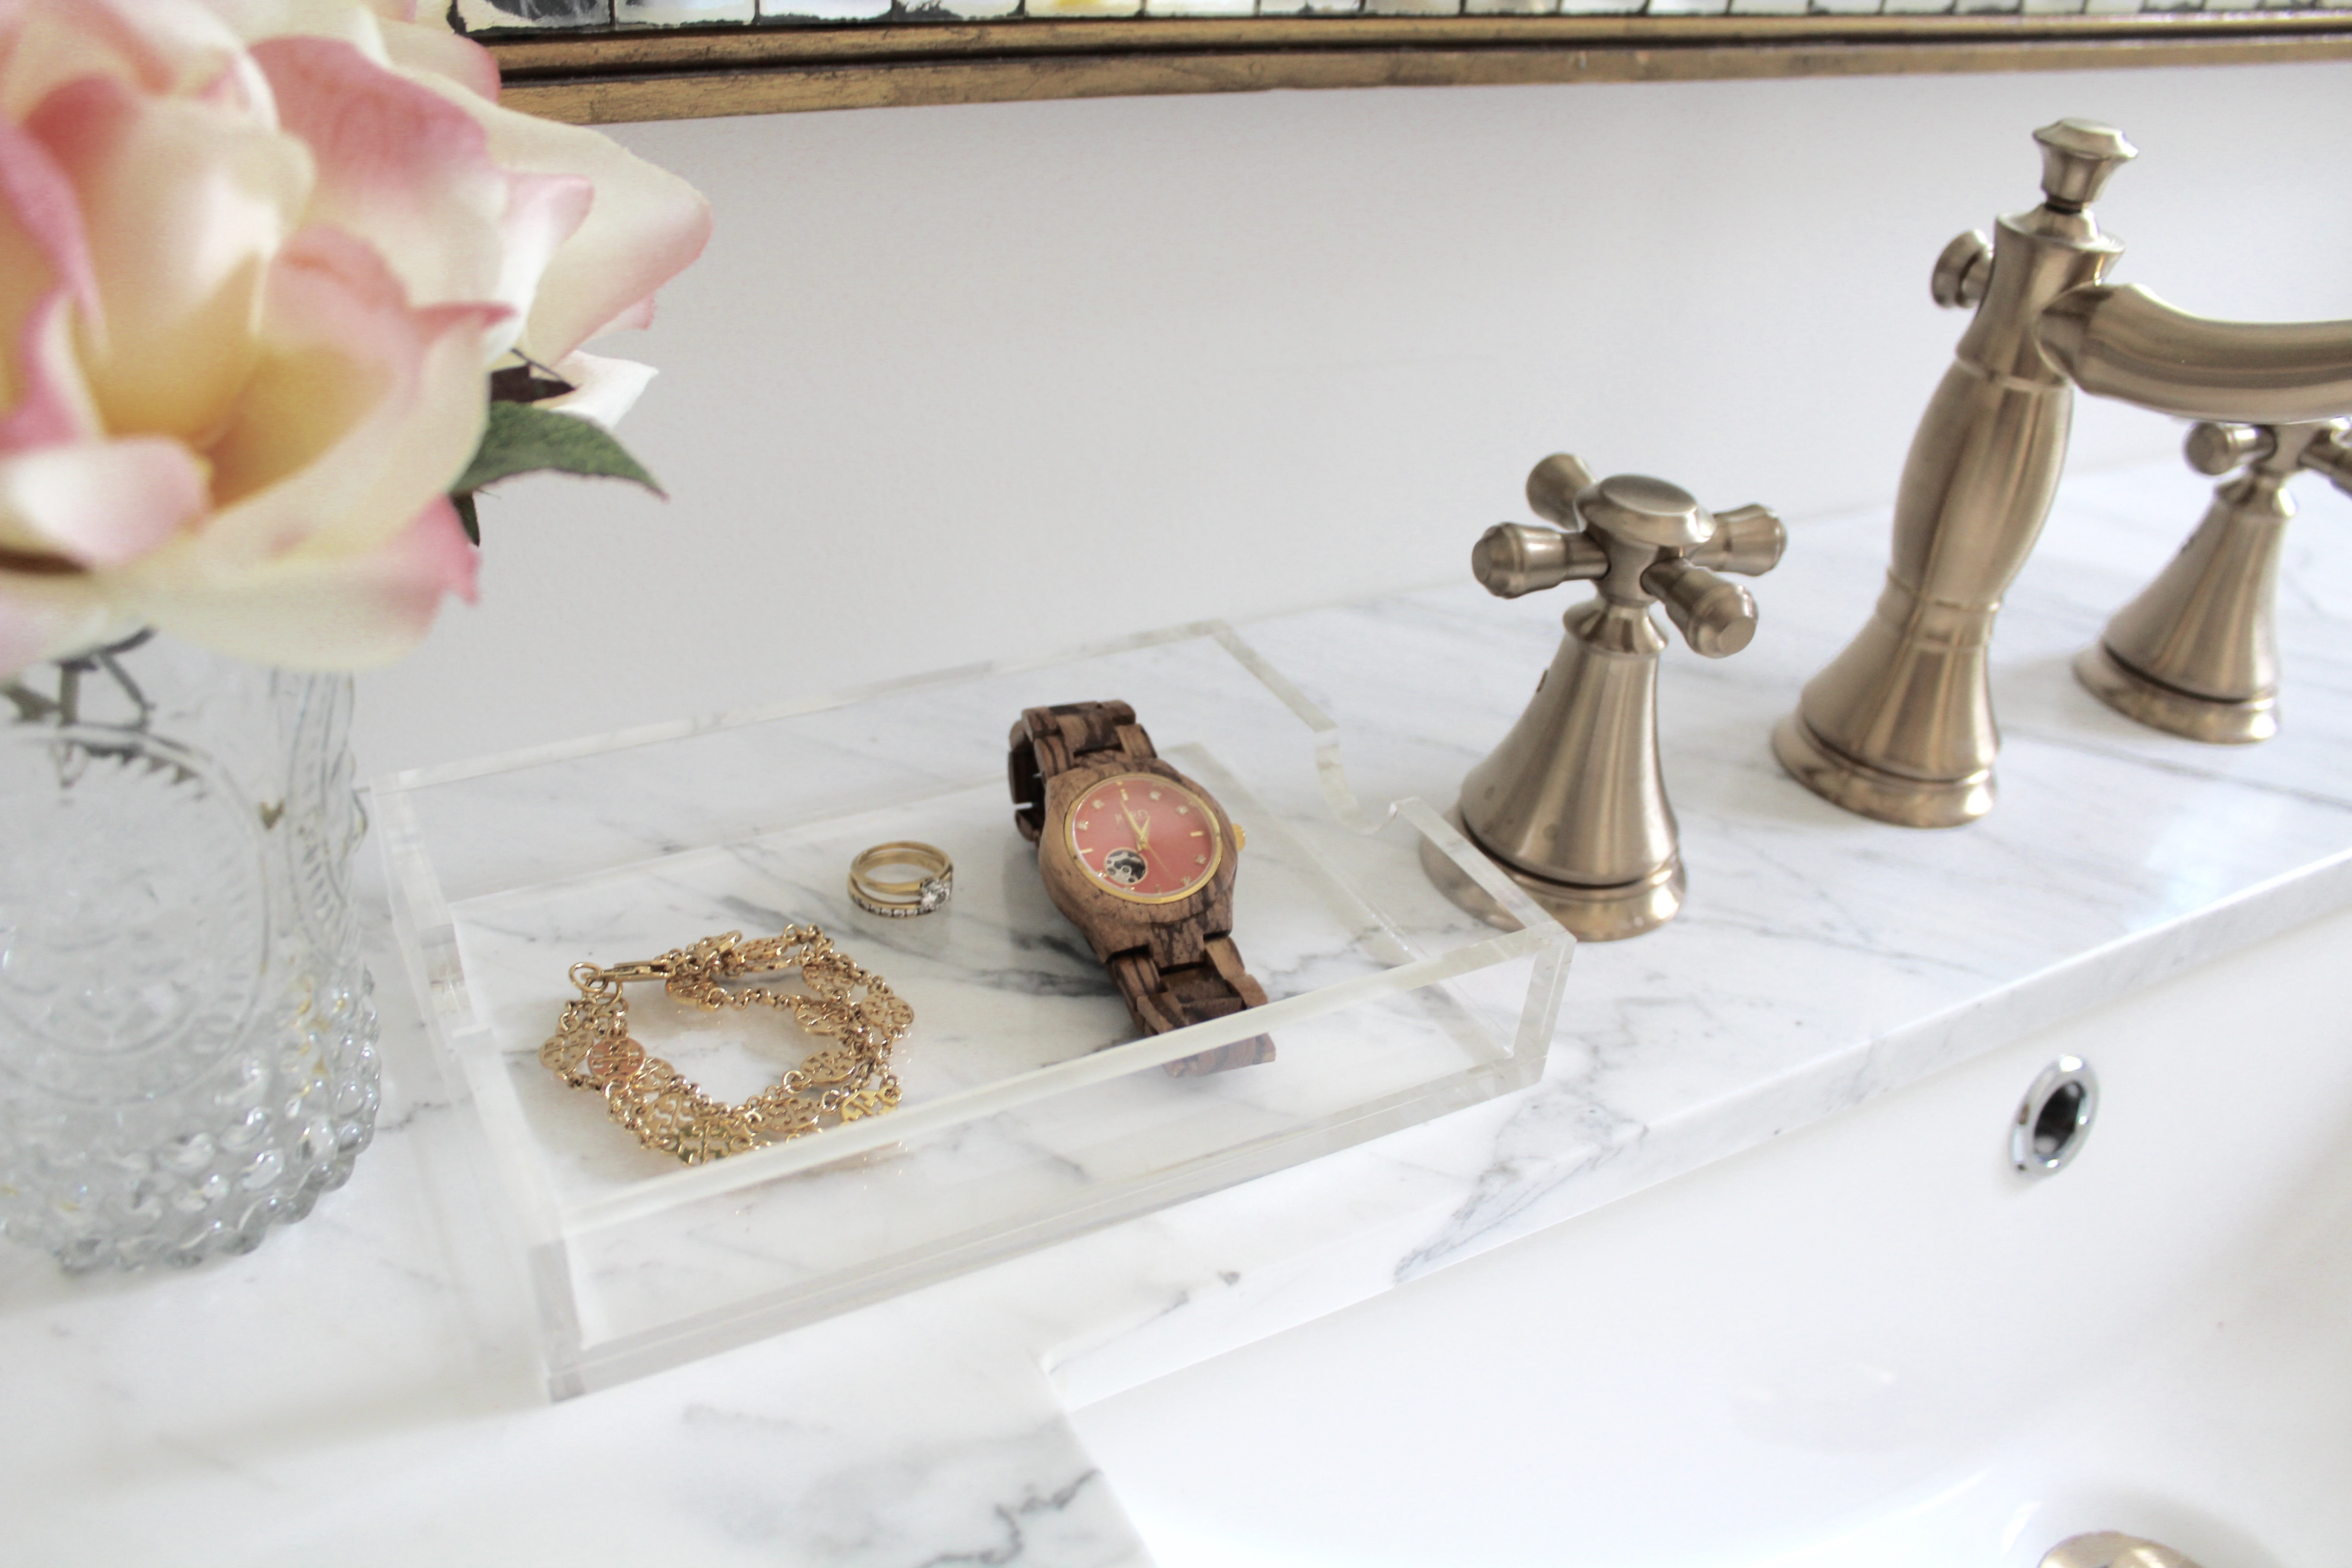 marble_delta_faucet_champagne_bronze_lucite_tray_wood_watch